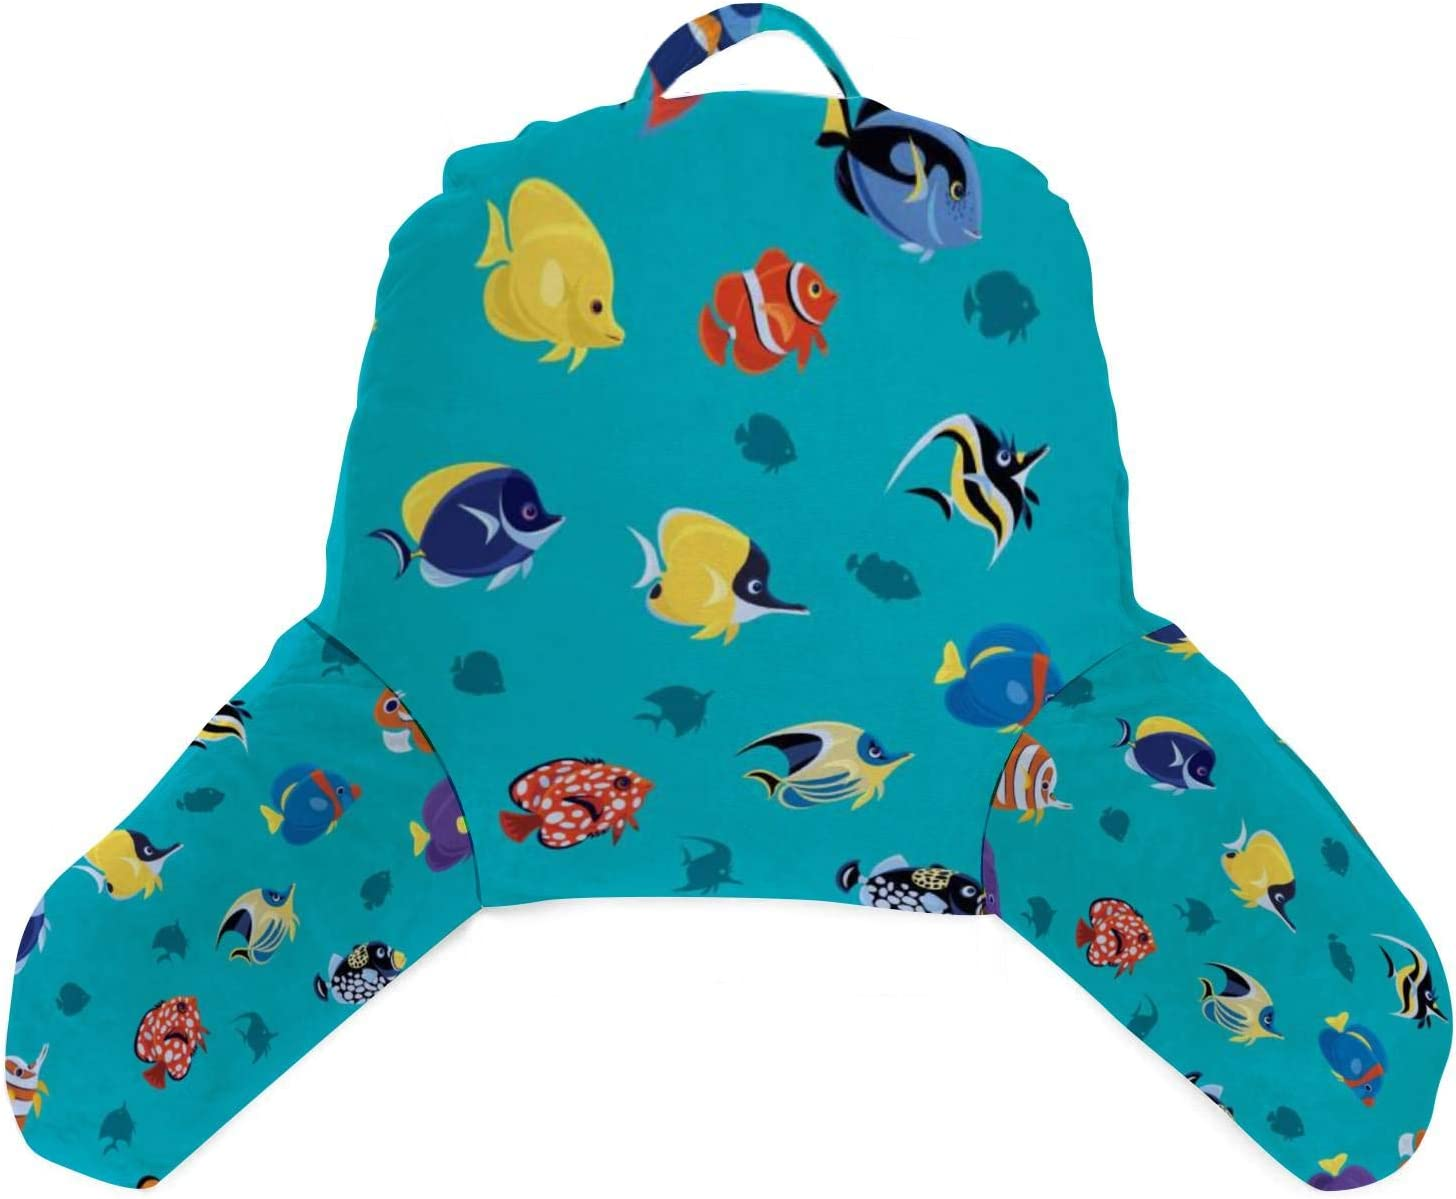 IEINTABRWNER Soft Reading Pillow Very popular! with High order and Tropical Pockets Arms